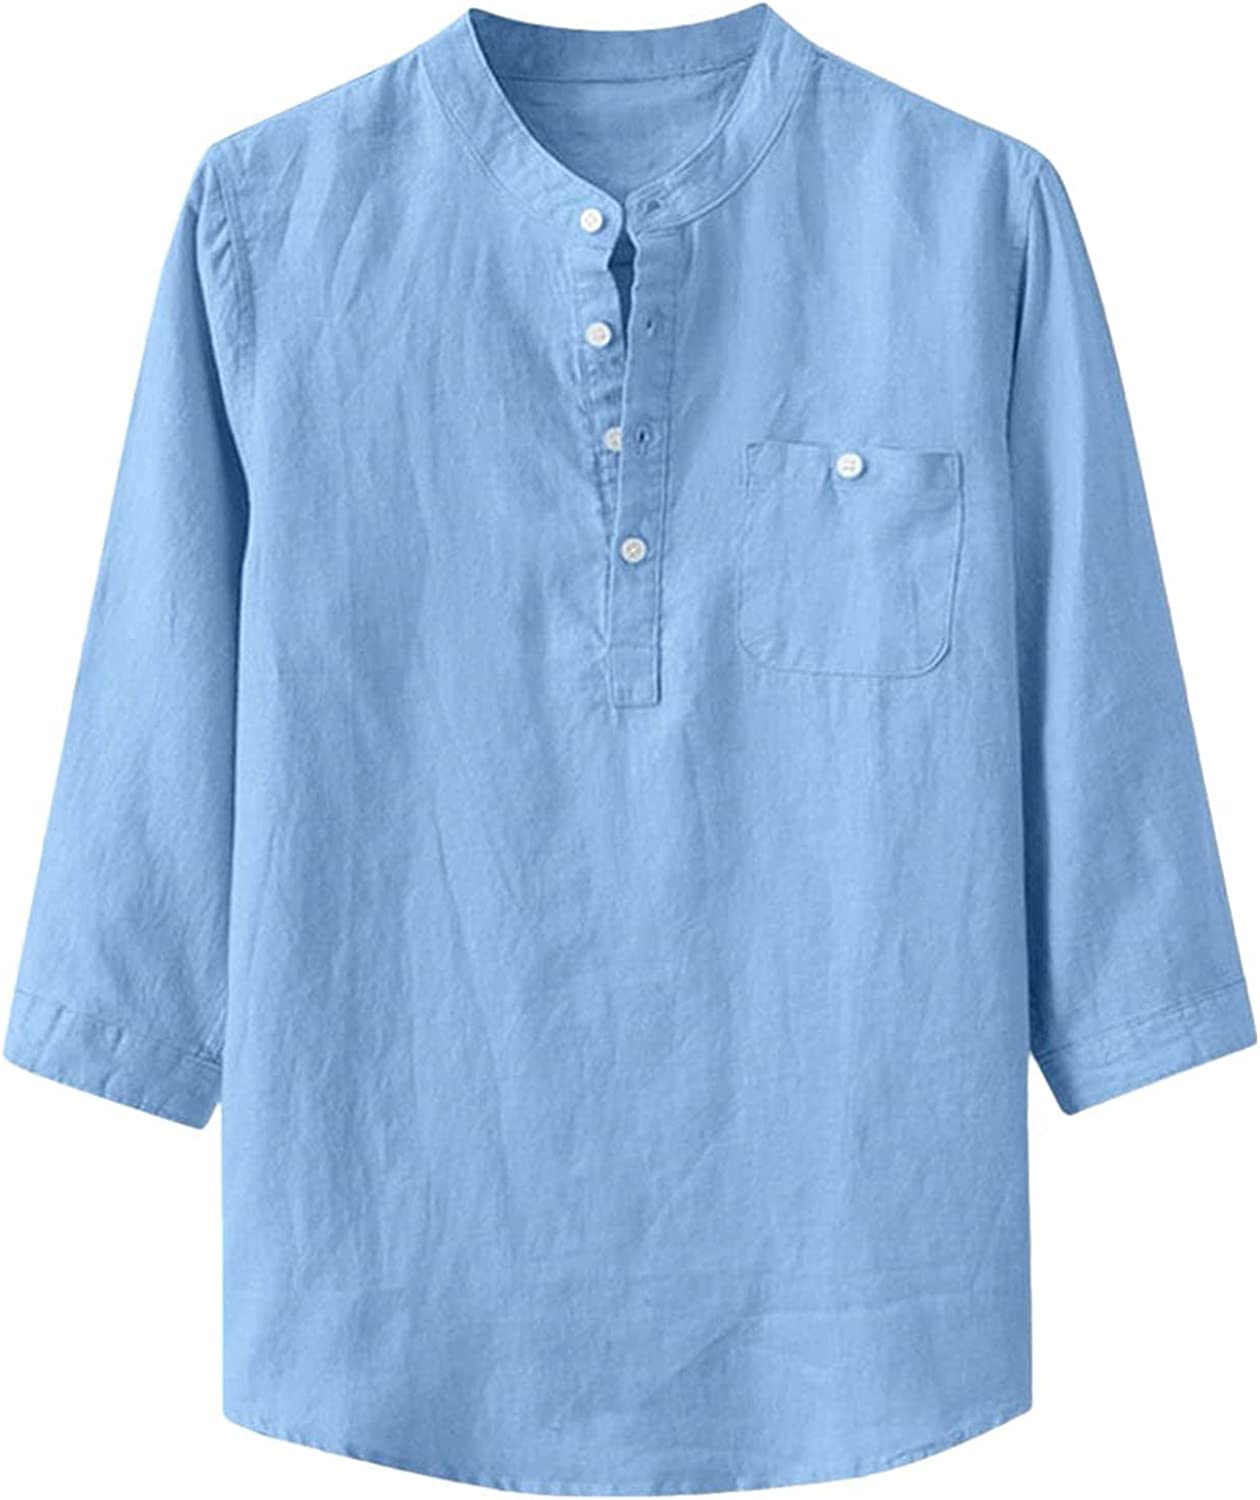 Men's Shirts Casual Cotton Linen 3/4 Sleeve Soild Button-Up Baggy Henley Shirts with Pockets